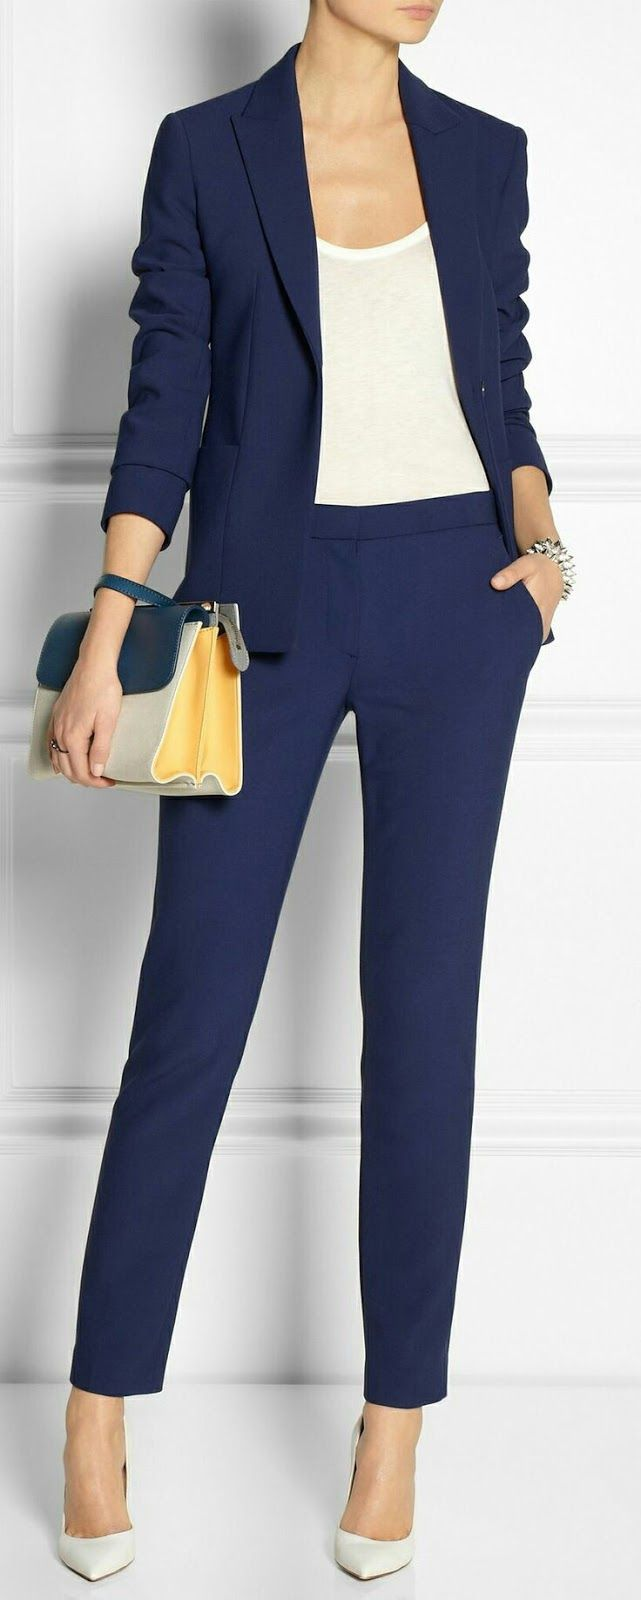 Popular Best 25+ Blue Pants Outfit Ideas On Pinterest | Cute Blouses For Work High Waisted Work Pants ...